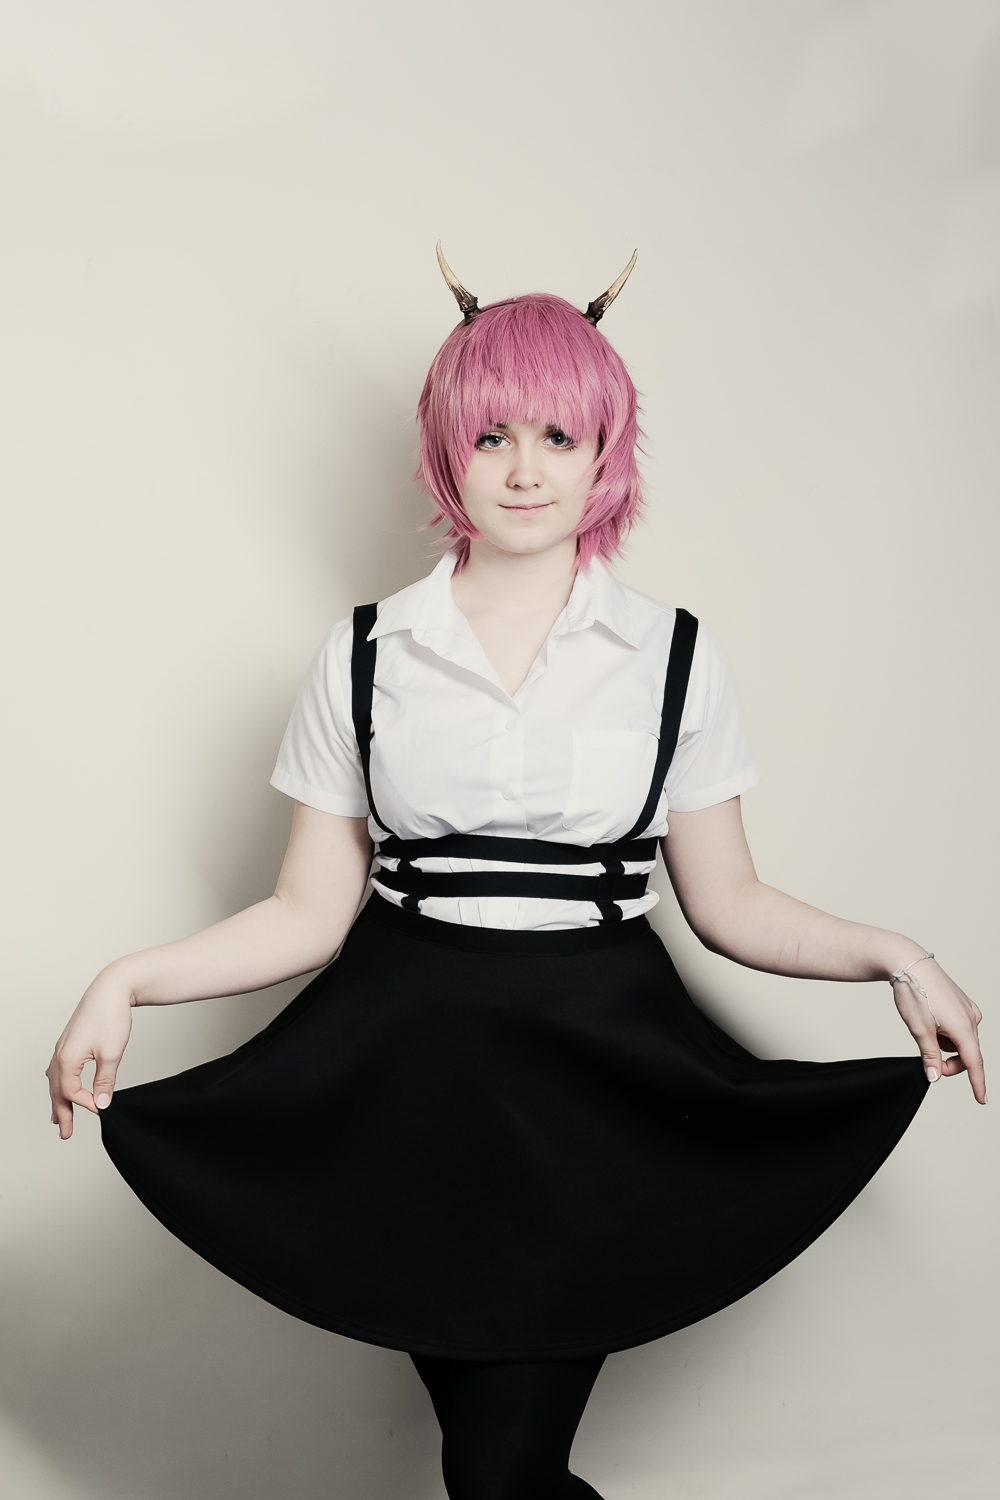 autistic girl anime portrait shoot lancashire yorkshire